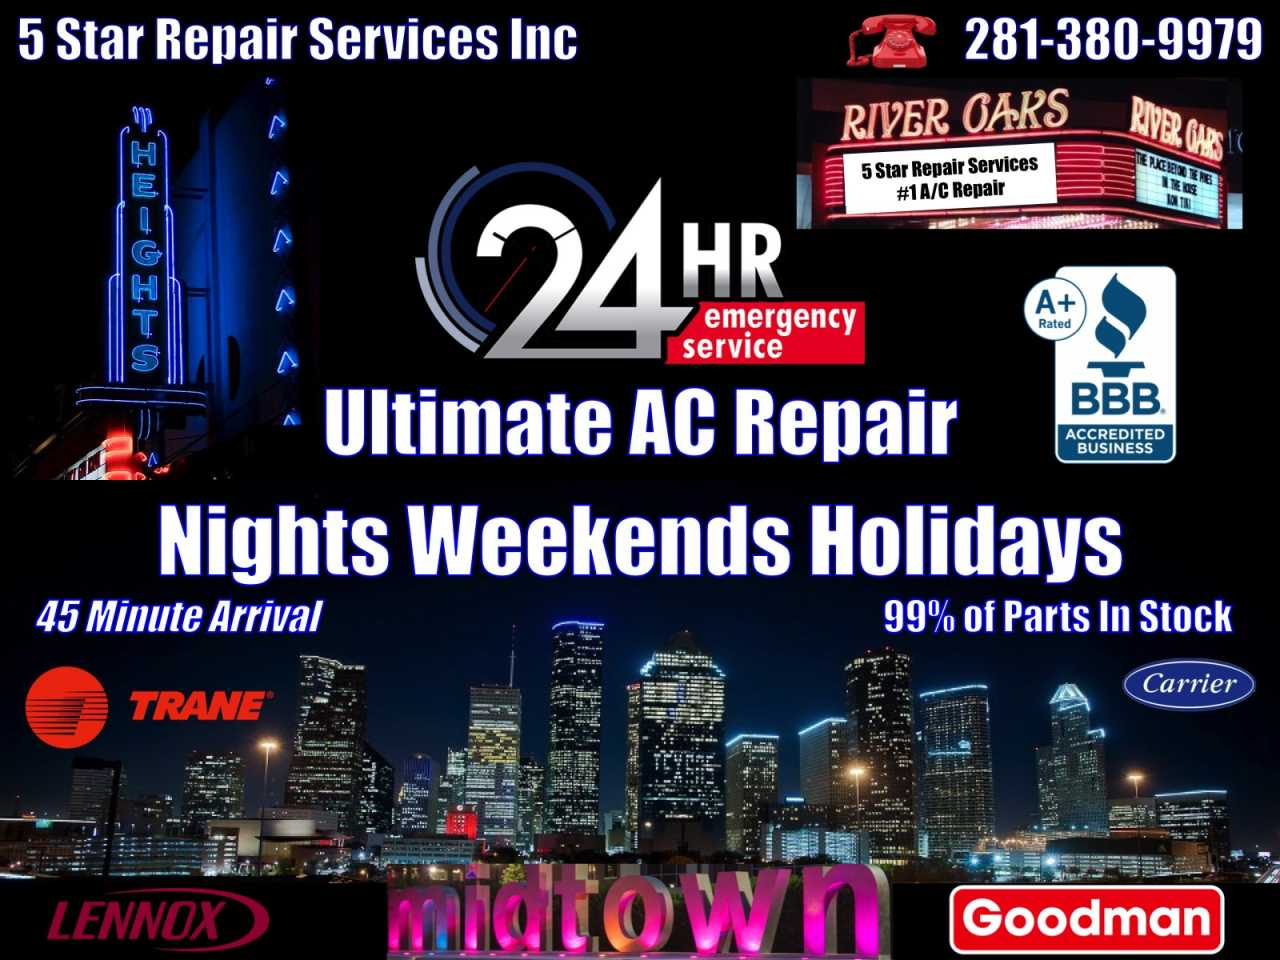 24Hour AC Repair The Heights 77007 77008 - Midtown 77004 - Montrose 77006 - River Oaks 77006 77019 77098 77027